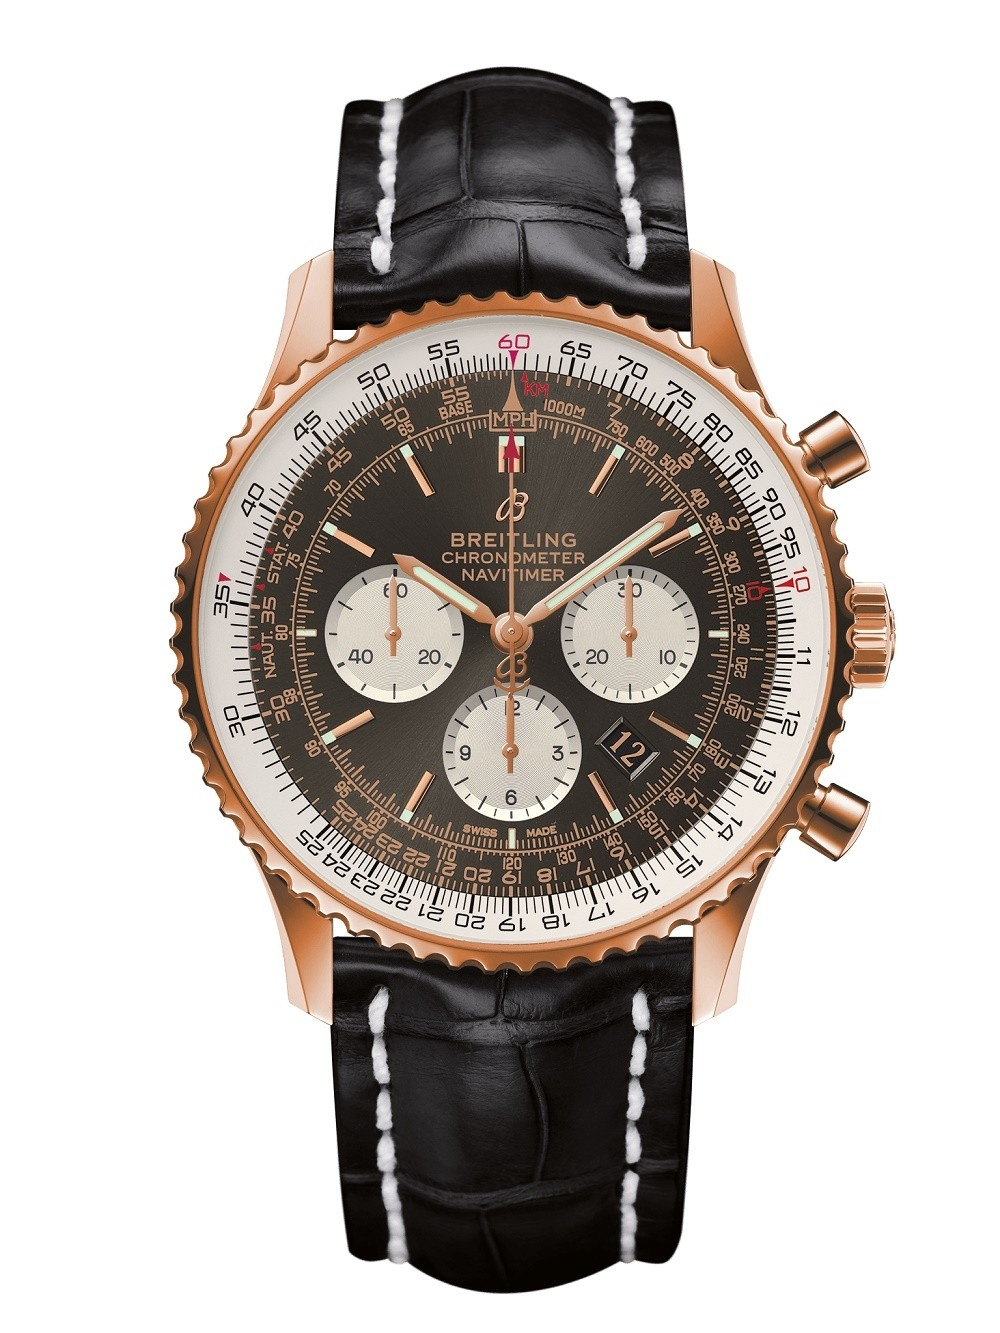 The Top 5 Most Expensive Pilot Watches In The World Watchuseek